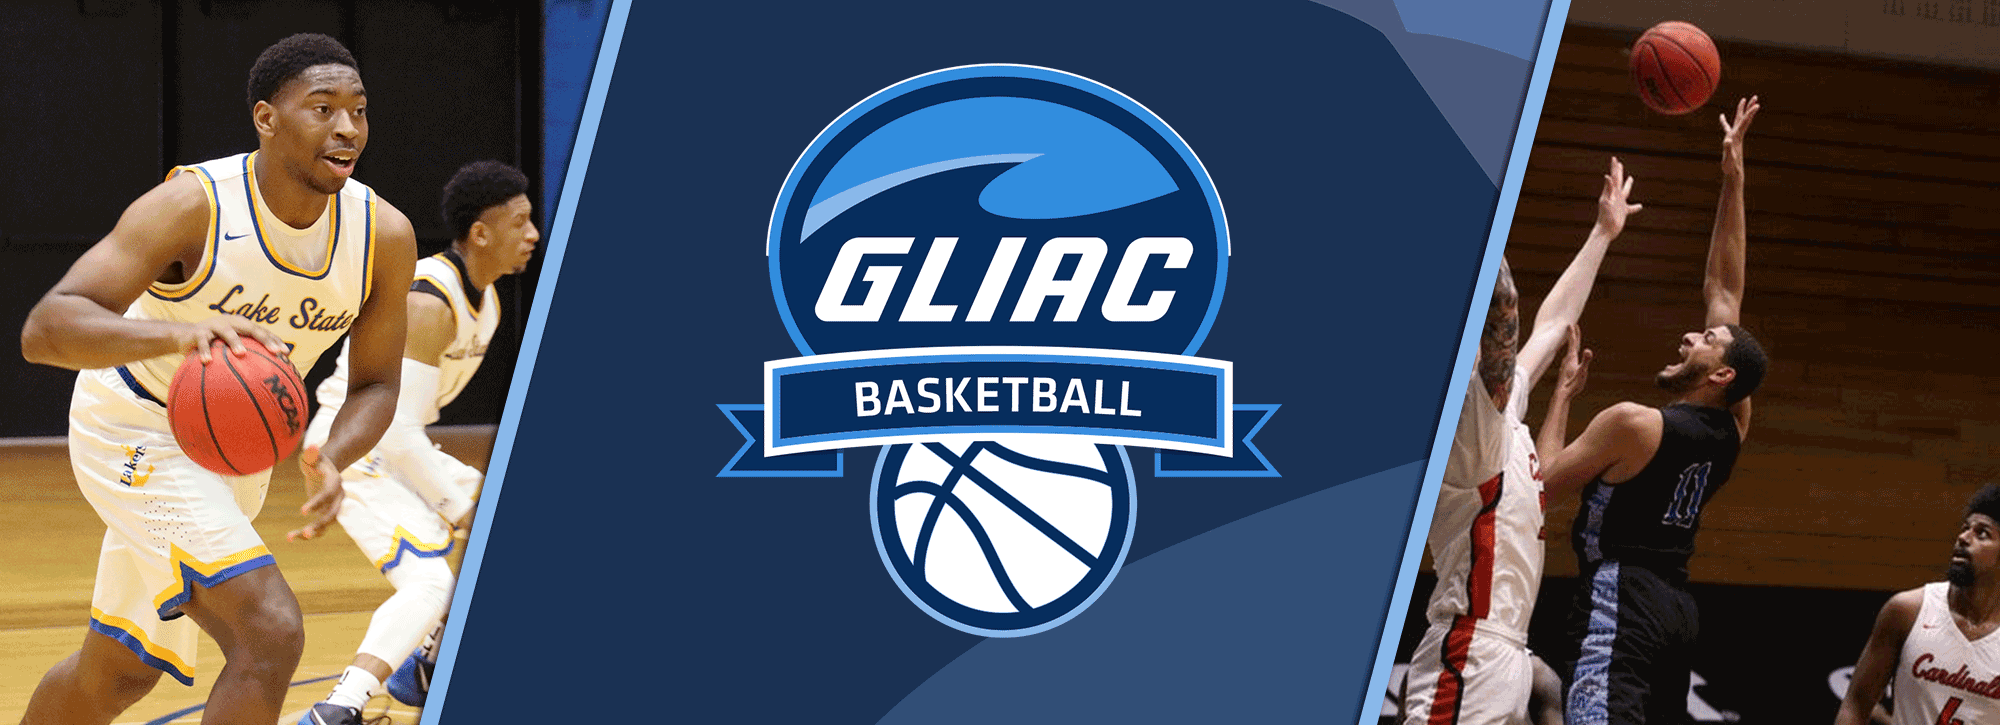 LSSU's Bassett, GVSU's Negron Claim GLIAC Men's Basketball Weekly Honors